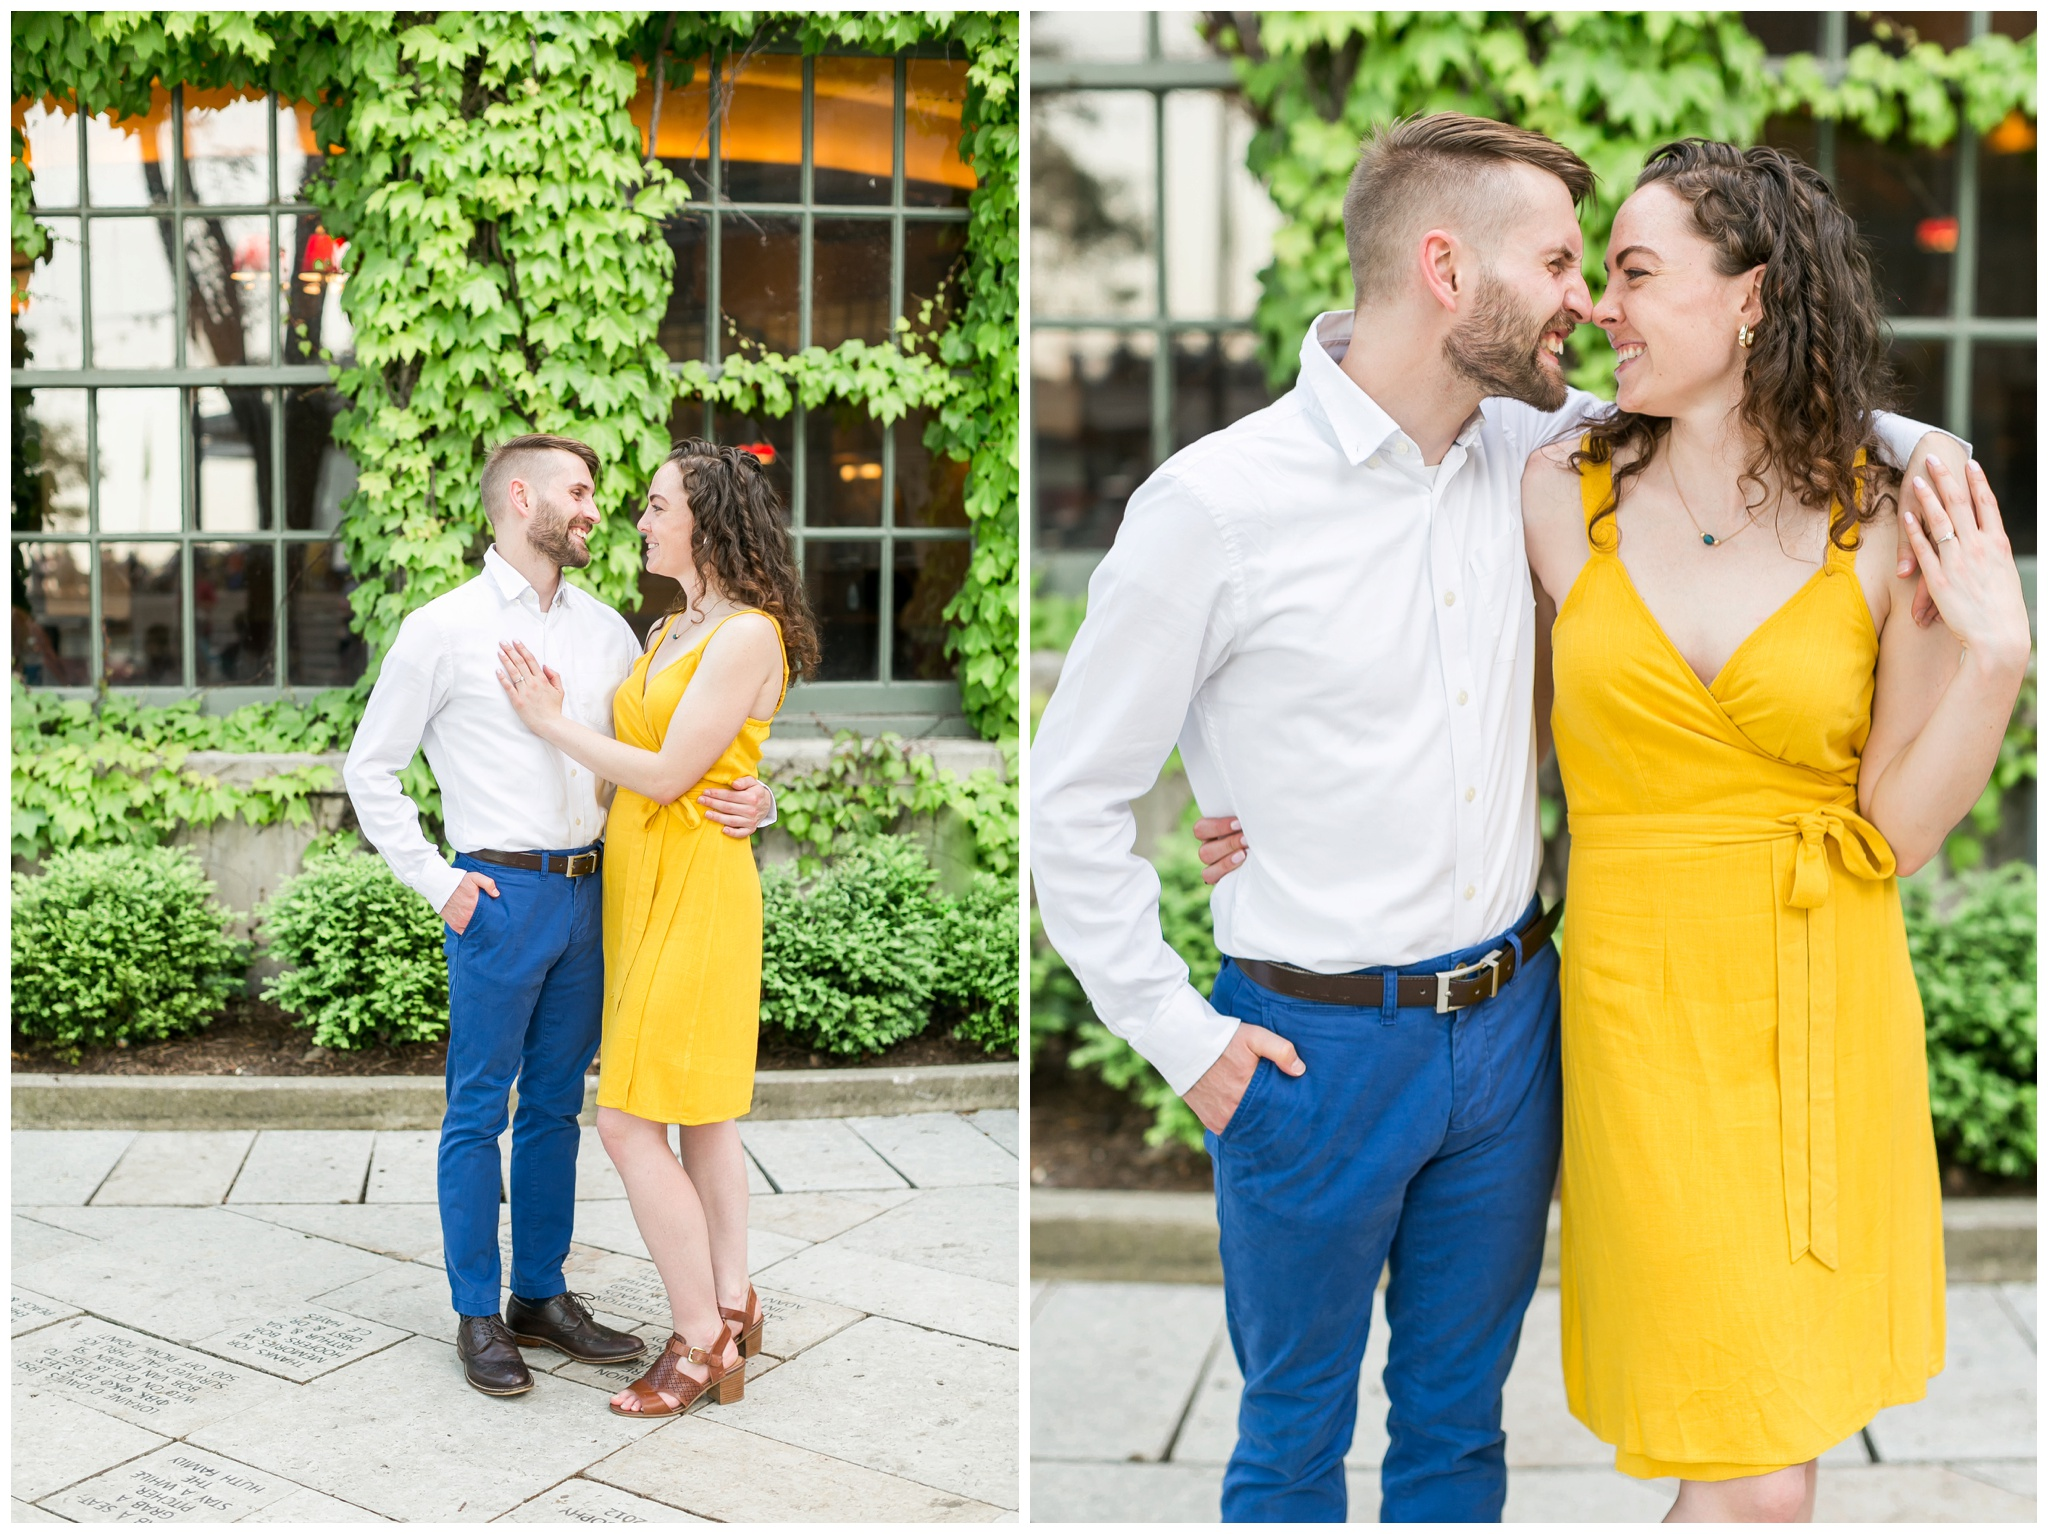 memorial_union_engagement_session_madison_wisconsin_photographers_3807.jpg